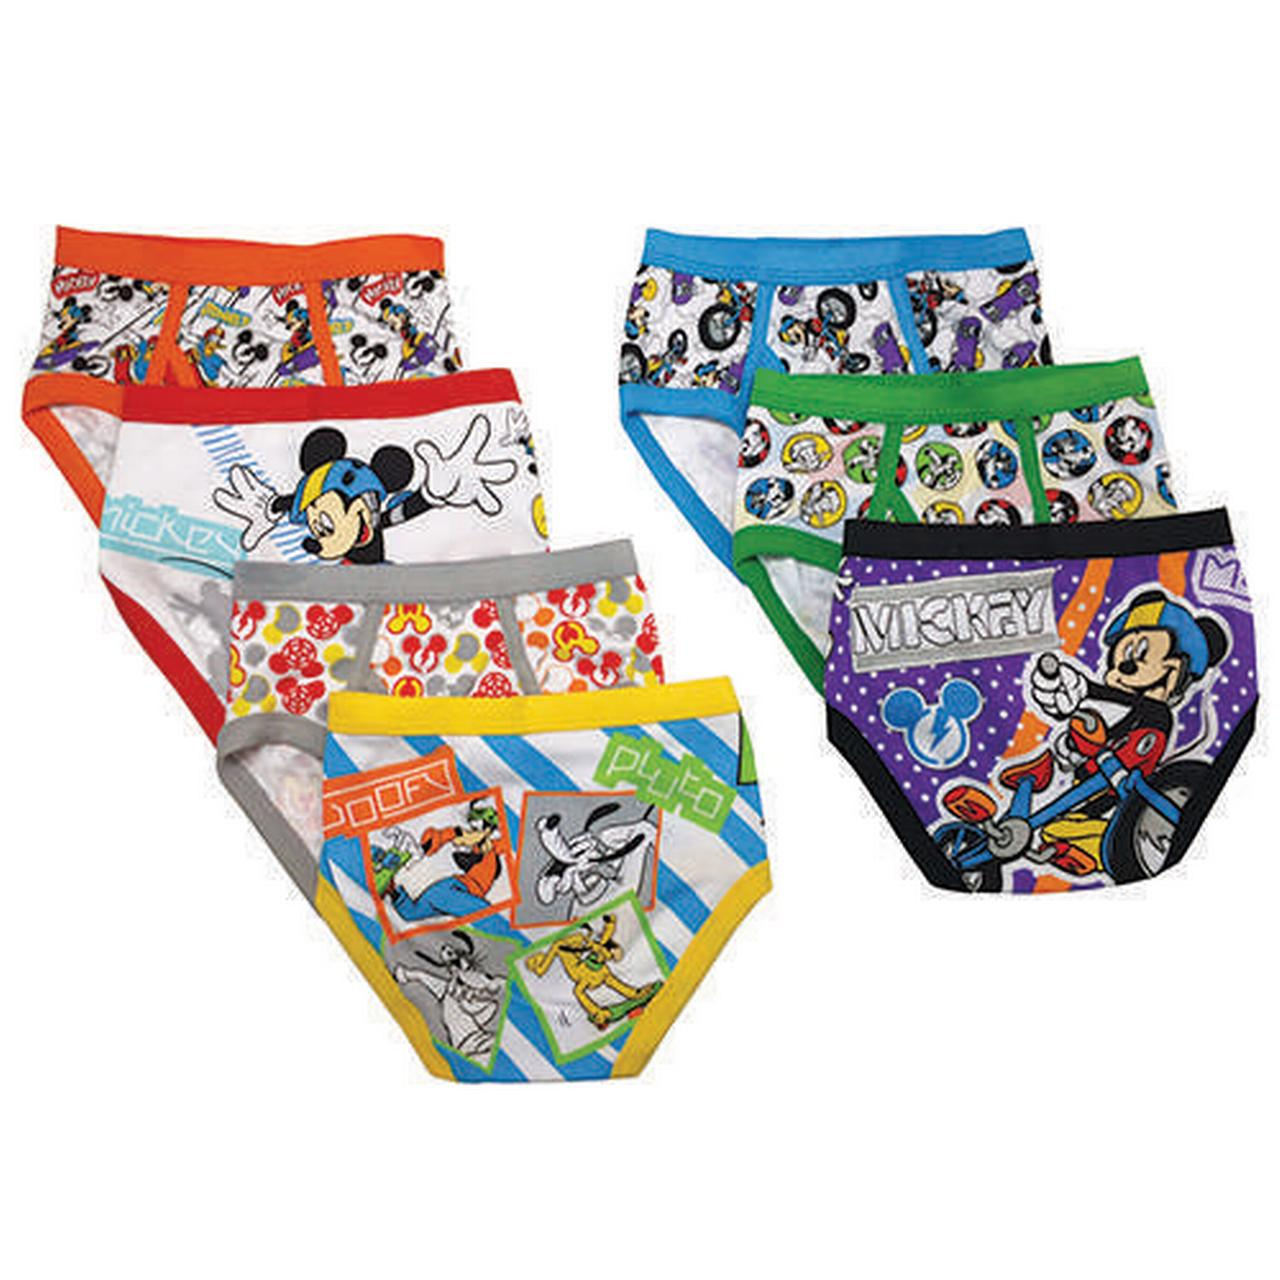 Disney Toddler Boy Mickey Mouse Underwear, 7-Pack